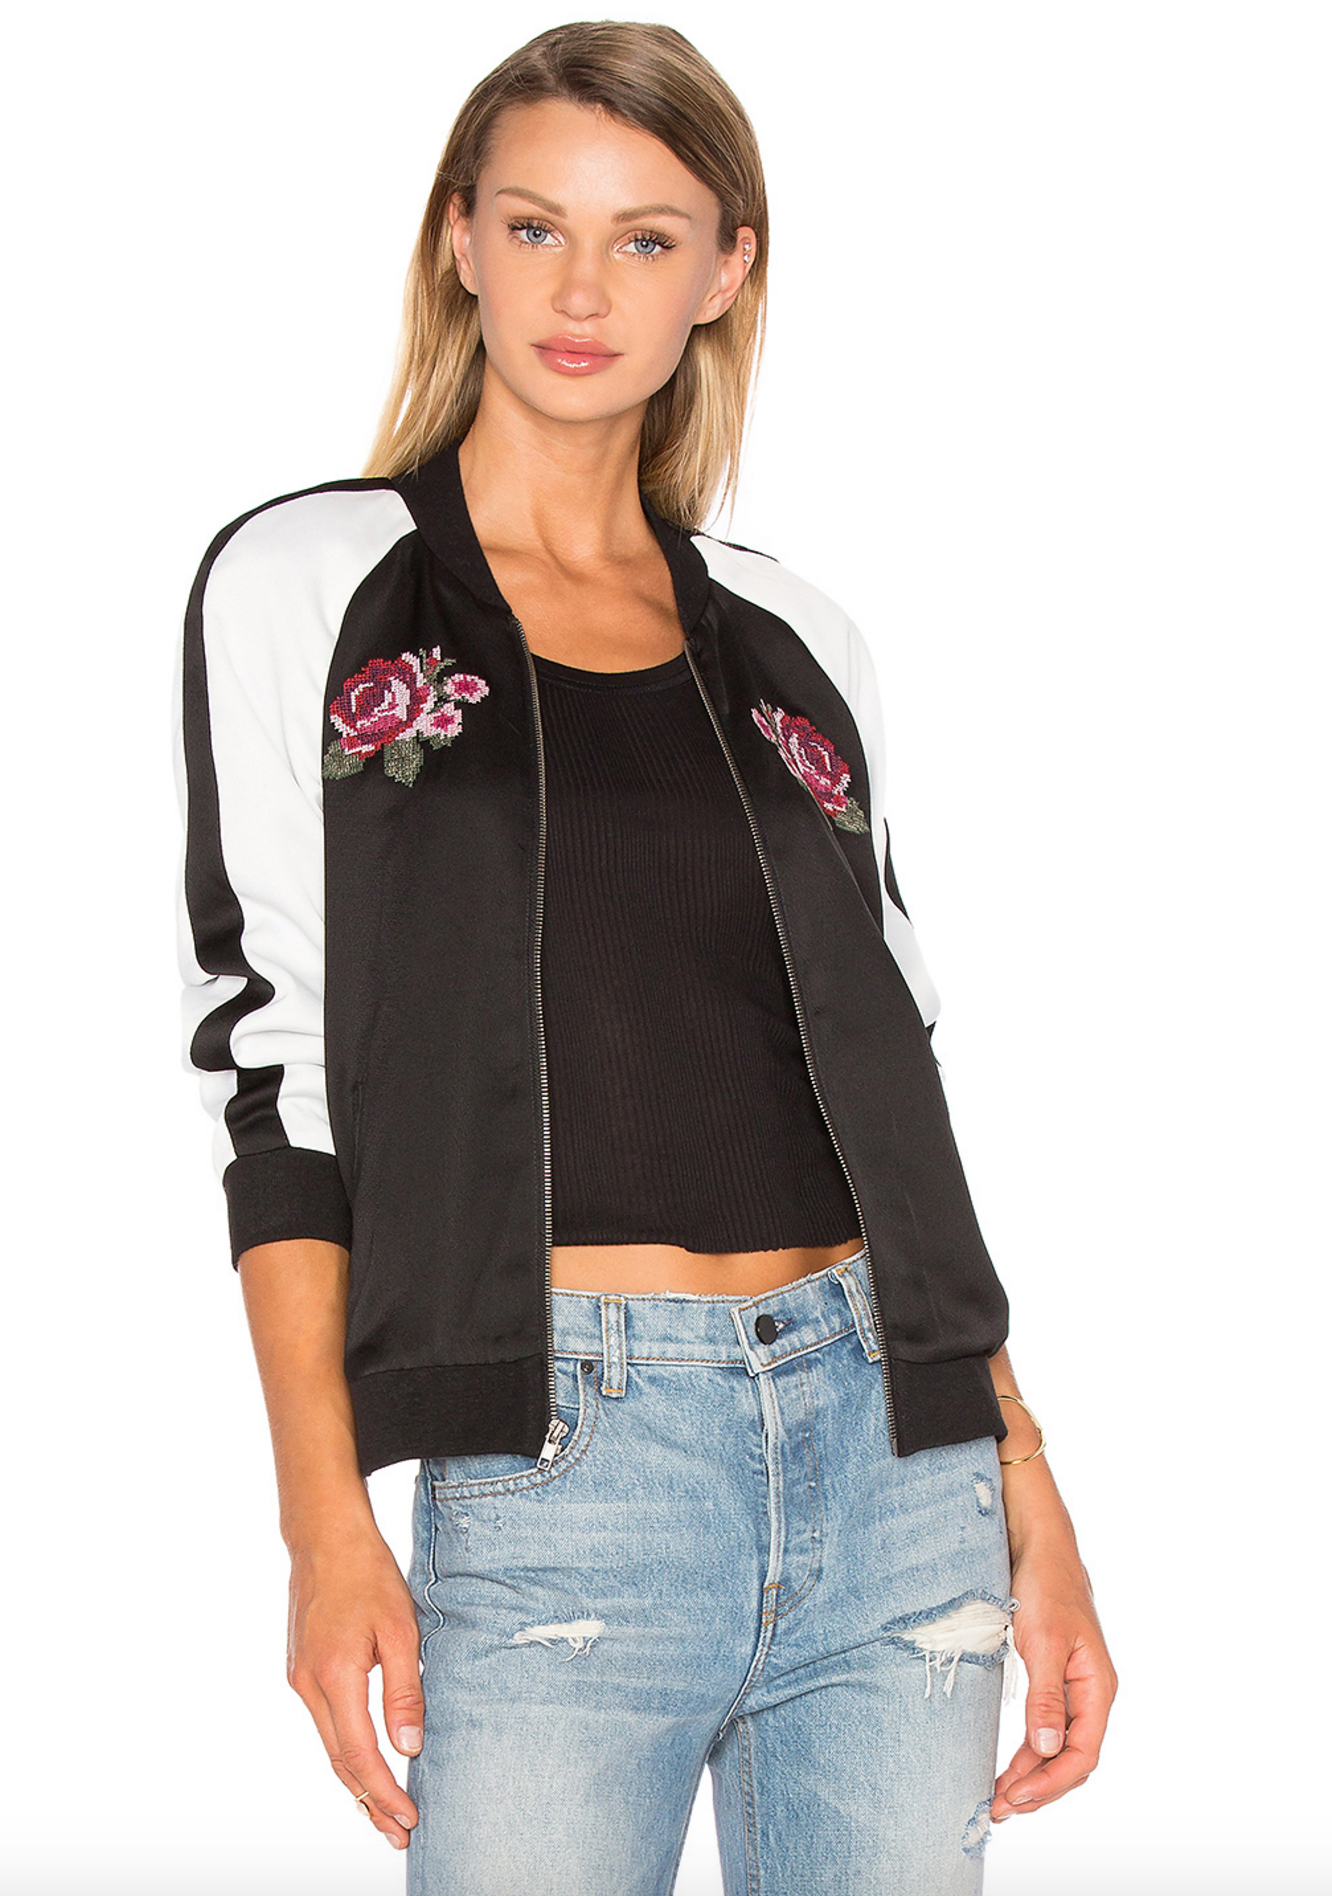 Cupcakes & Cashmere daffodil jacket $231